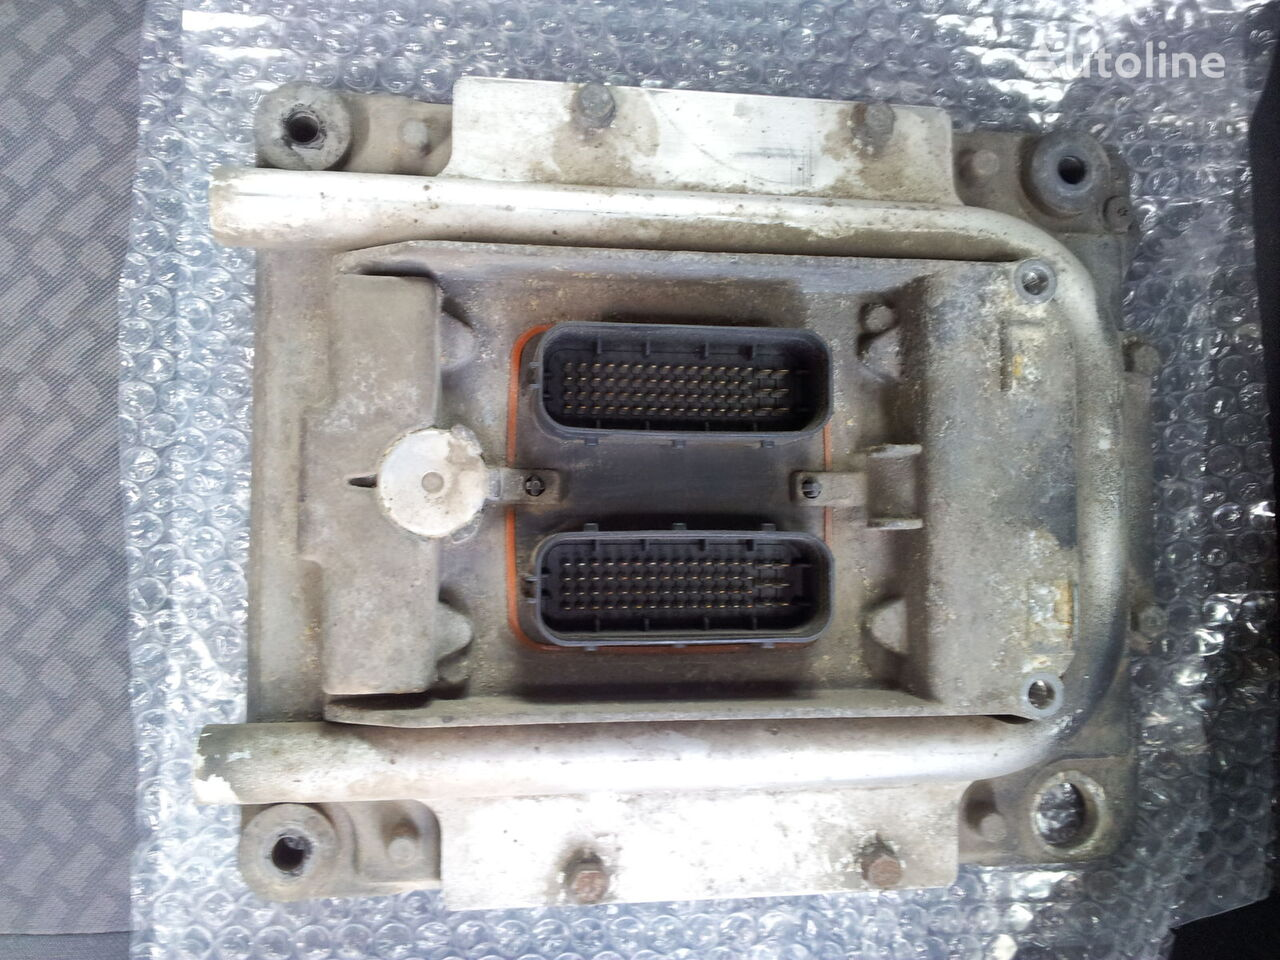 блок управления RENAULT VOLVO FH13, ECU control unit, 440PS, engine control unit, 205612 для тягача RENAULT Premium DXI